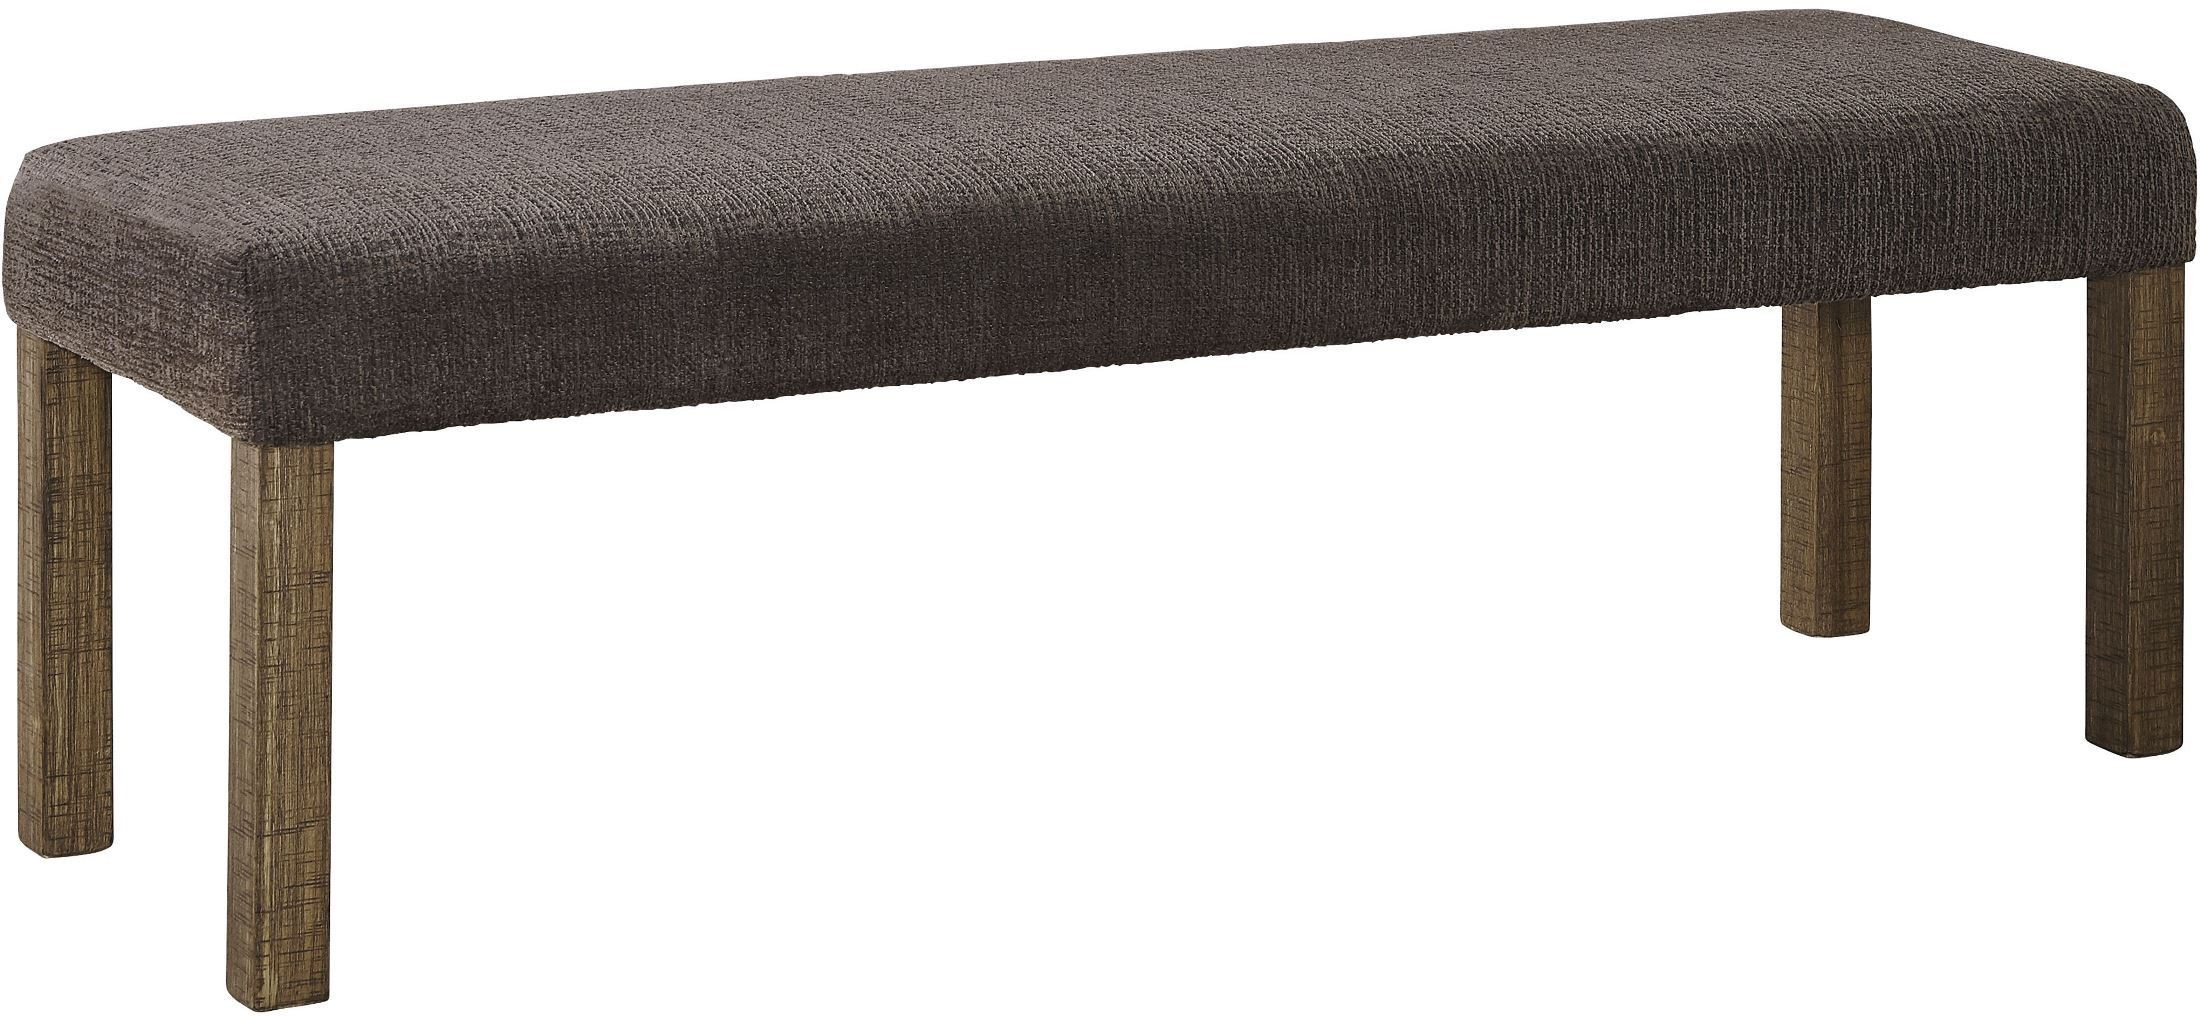 Tamilo dark brown large upholstered dining room bench from for Dining room upholstered bench